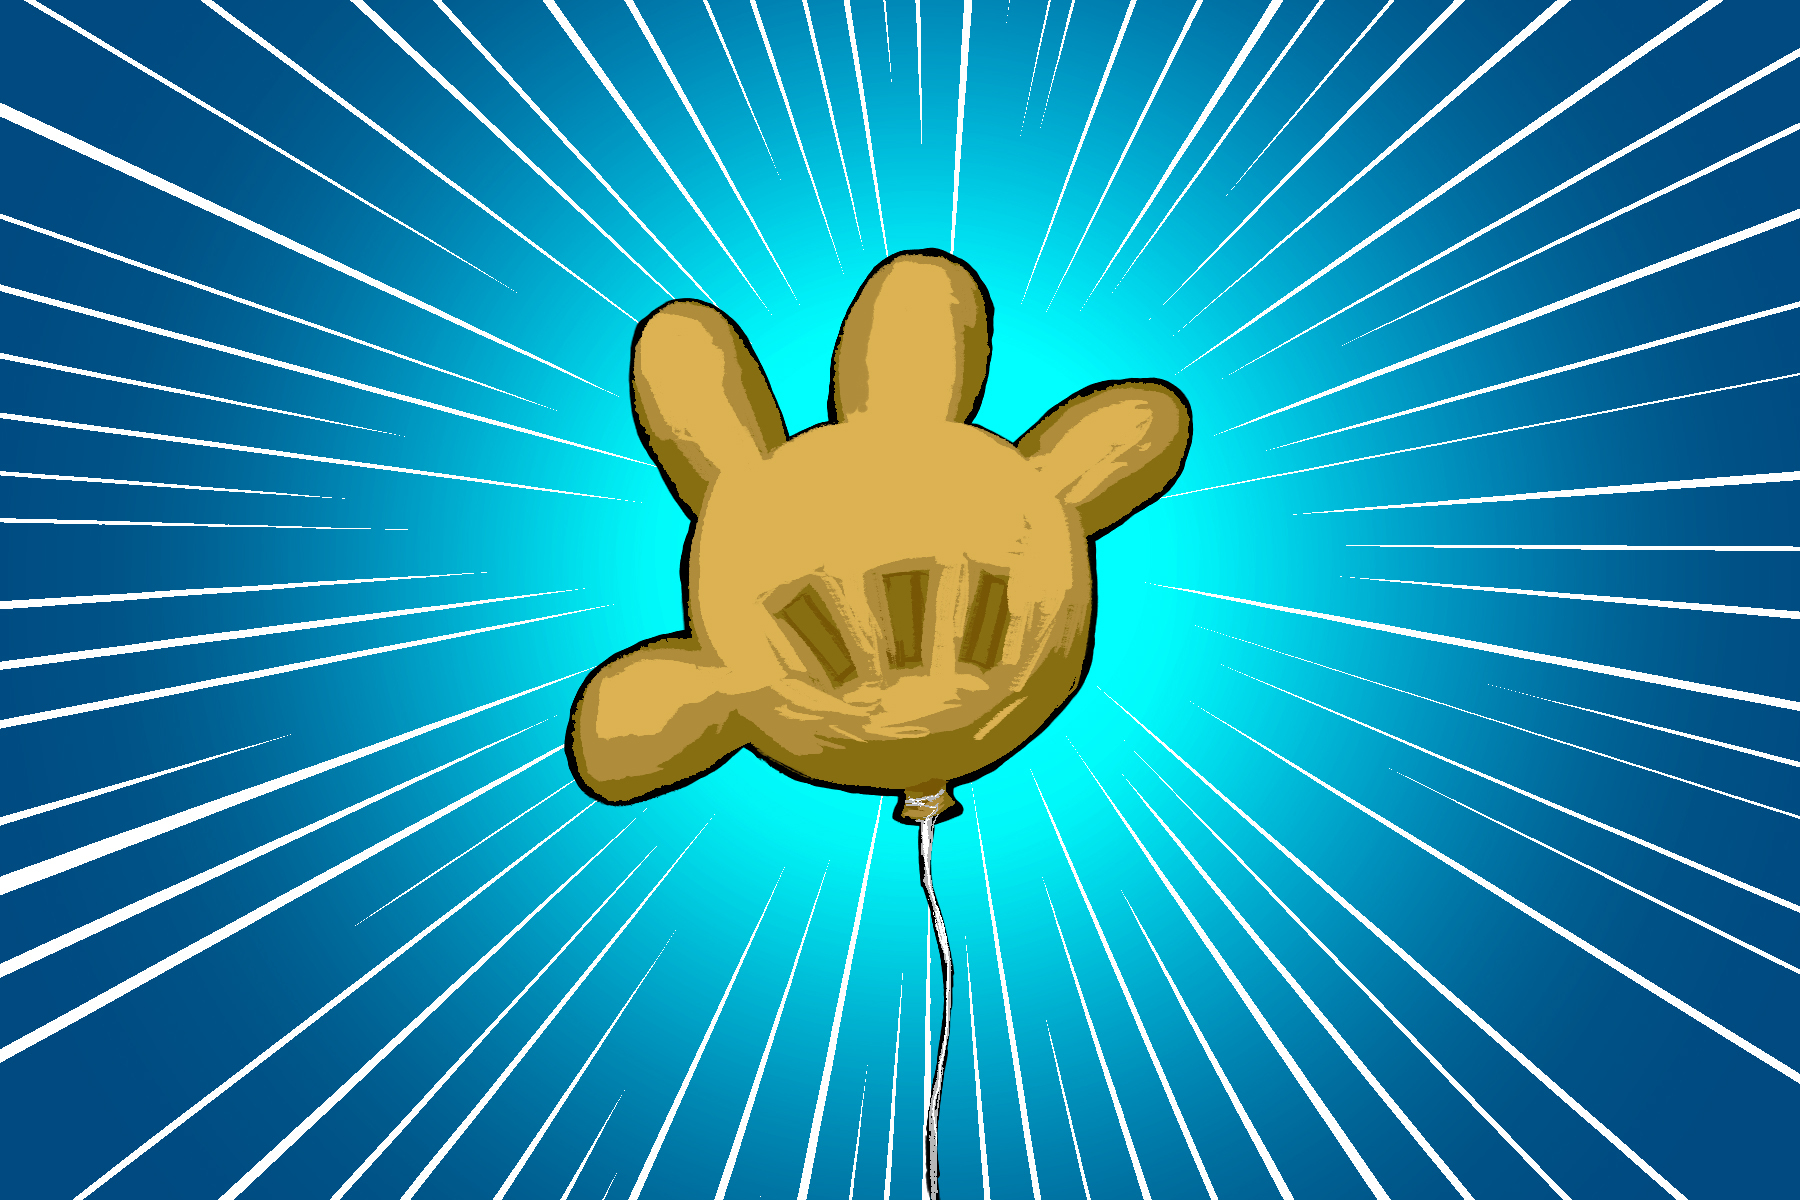 An illustration of a glove balloon from SpongeBob, for an article about the episode 'Rock Bottom.'